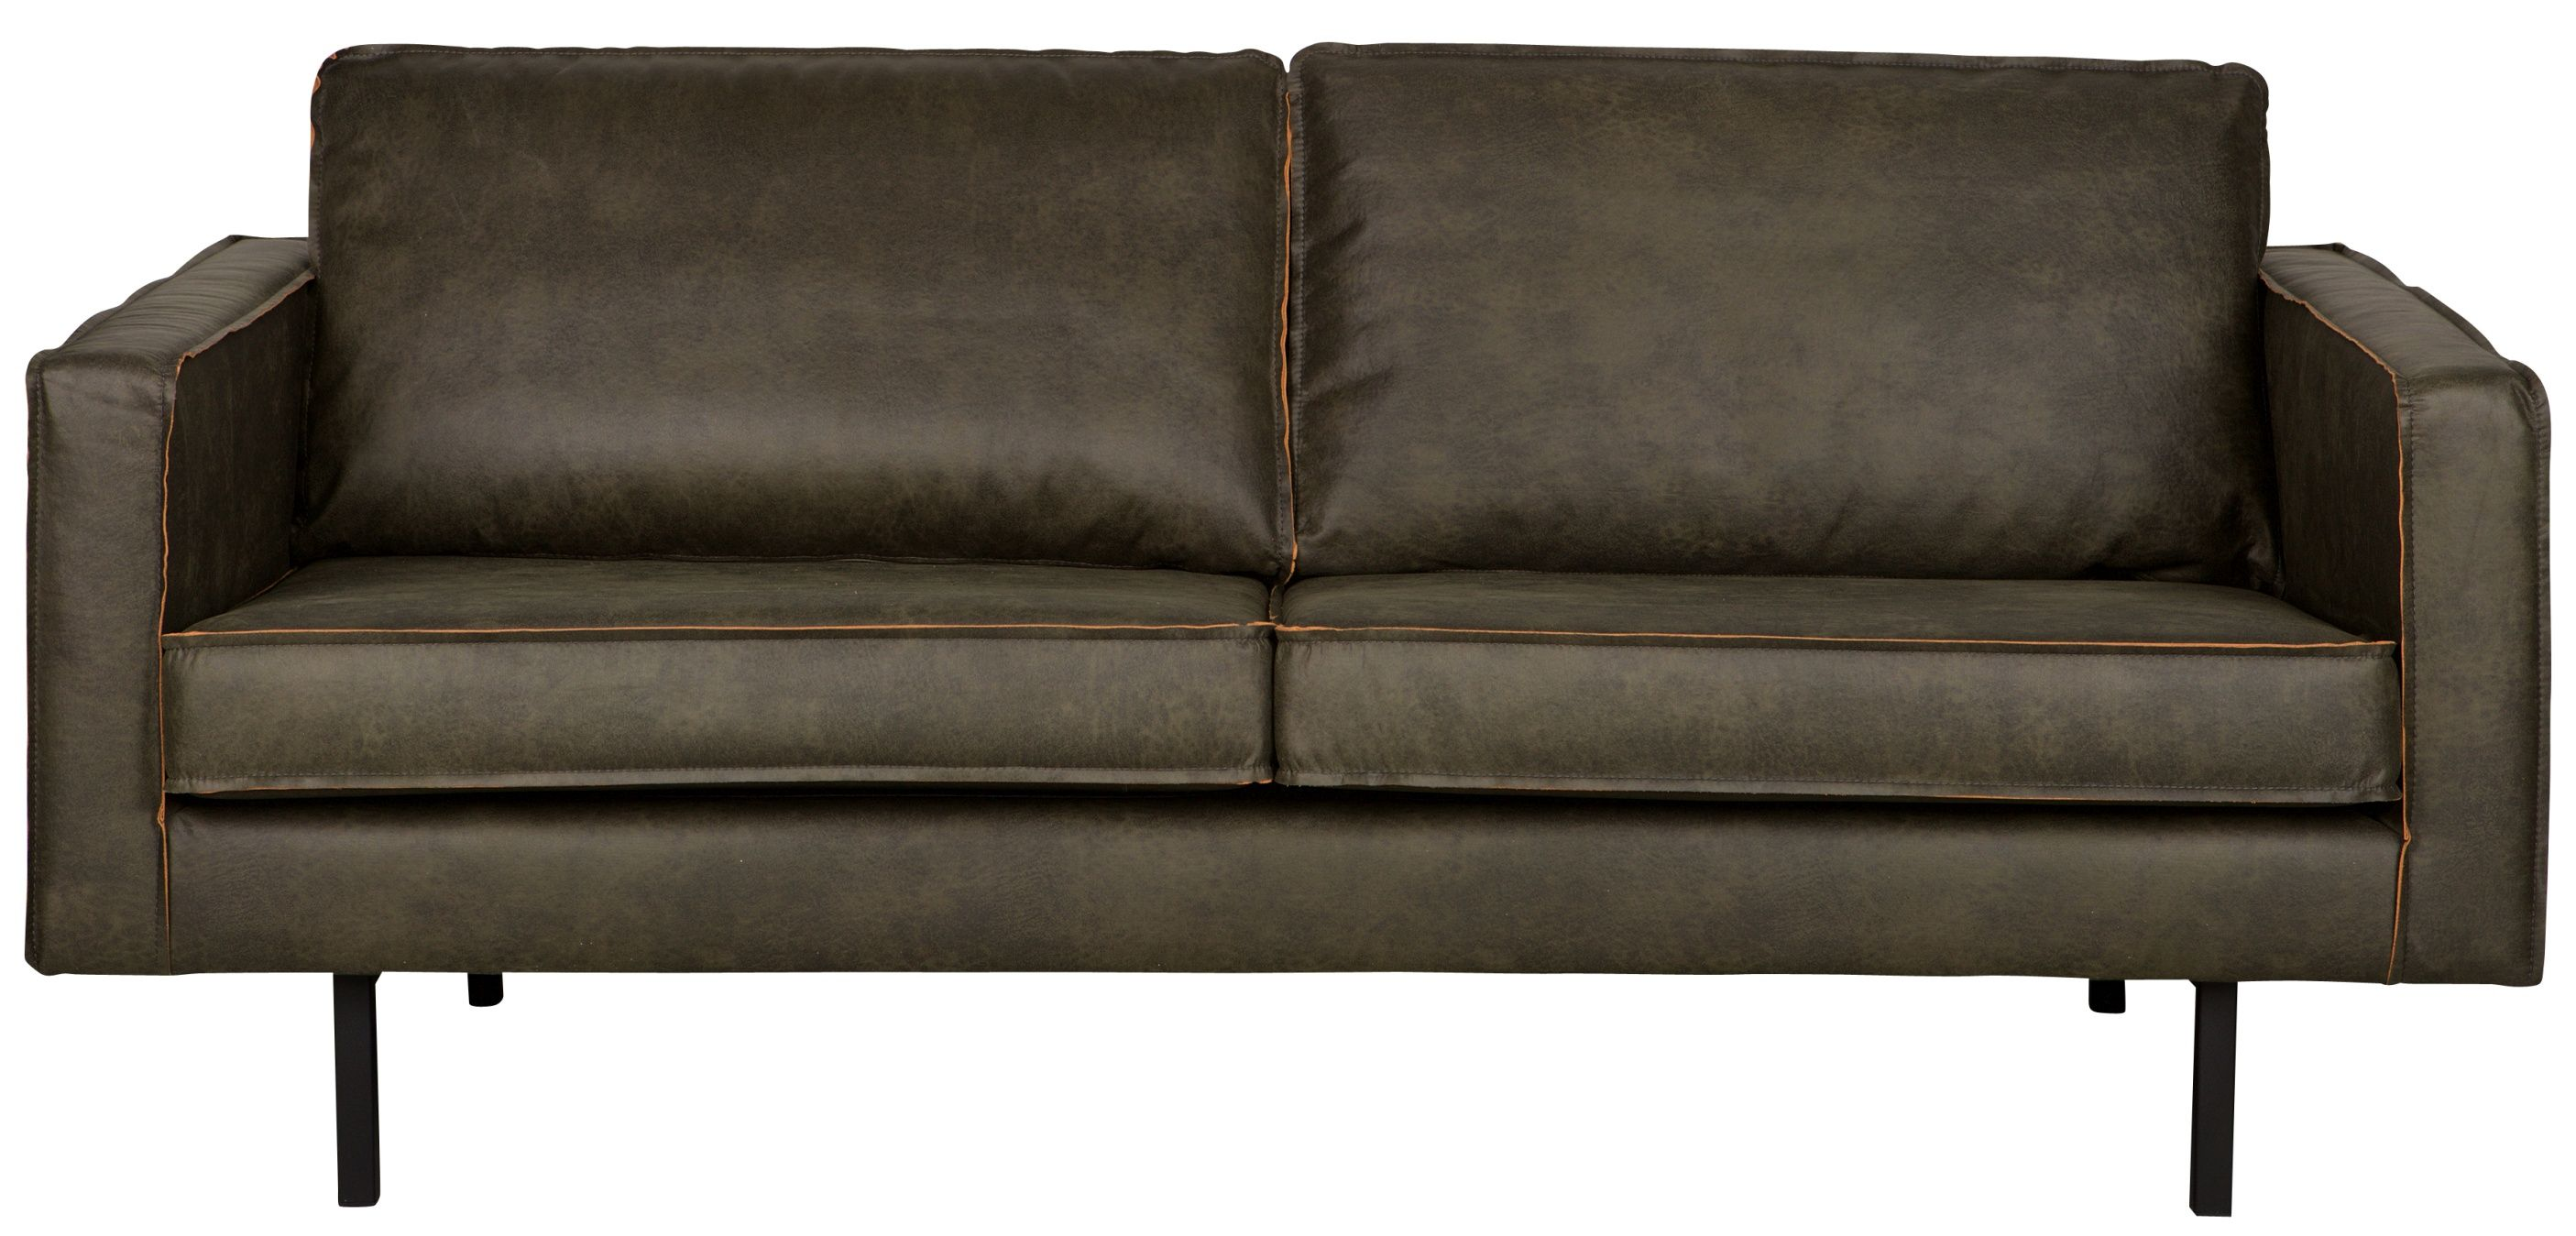 Rode Leren Chesterfield Bank.Tv Hoek Bepurehome Rodeo Bank 2 5 Zits B190 Cm Leer Army